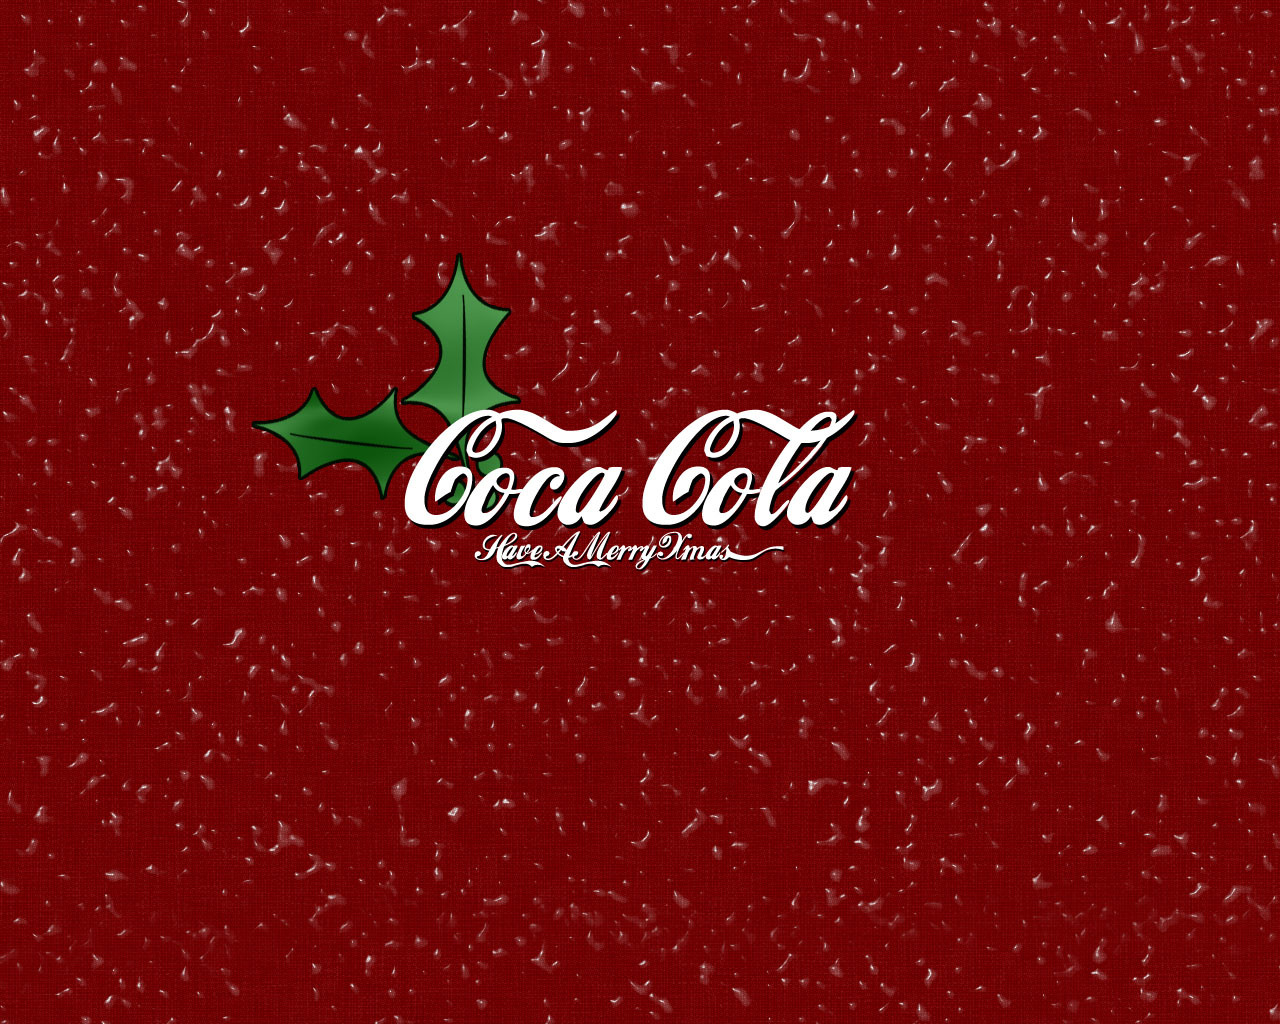 Free Download Coca Cola Christmas Wallpaper | Wallpapers Area